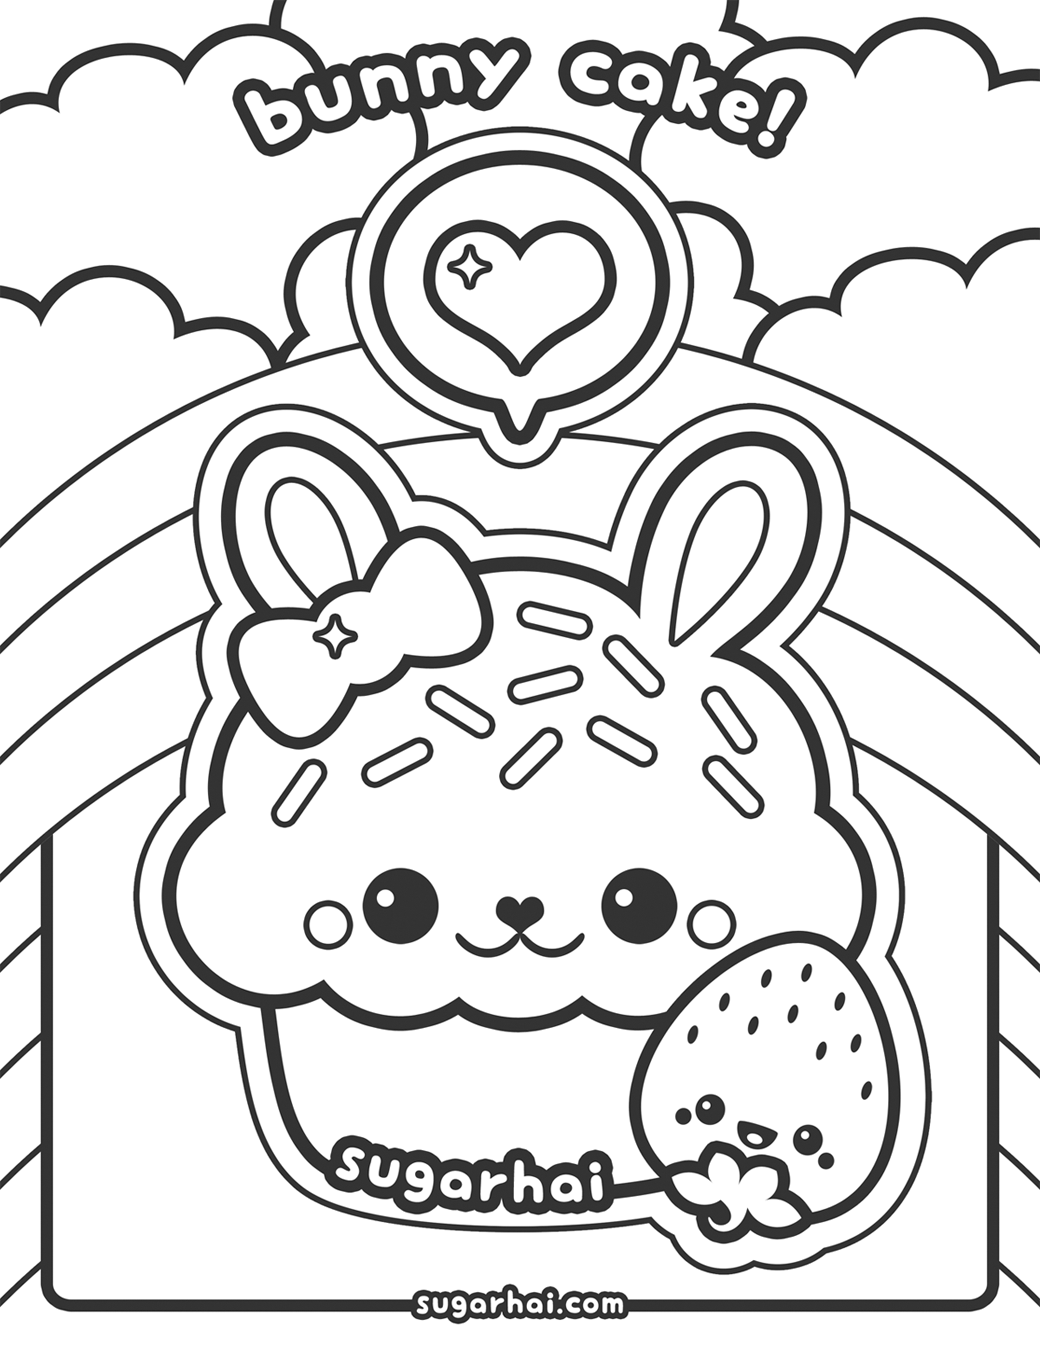 Free Bunny Cake Coloring Page (With images) Bunny